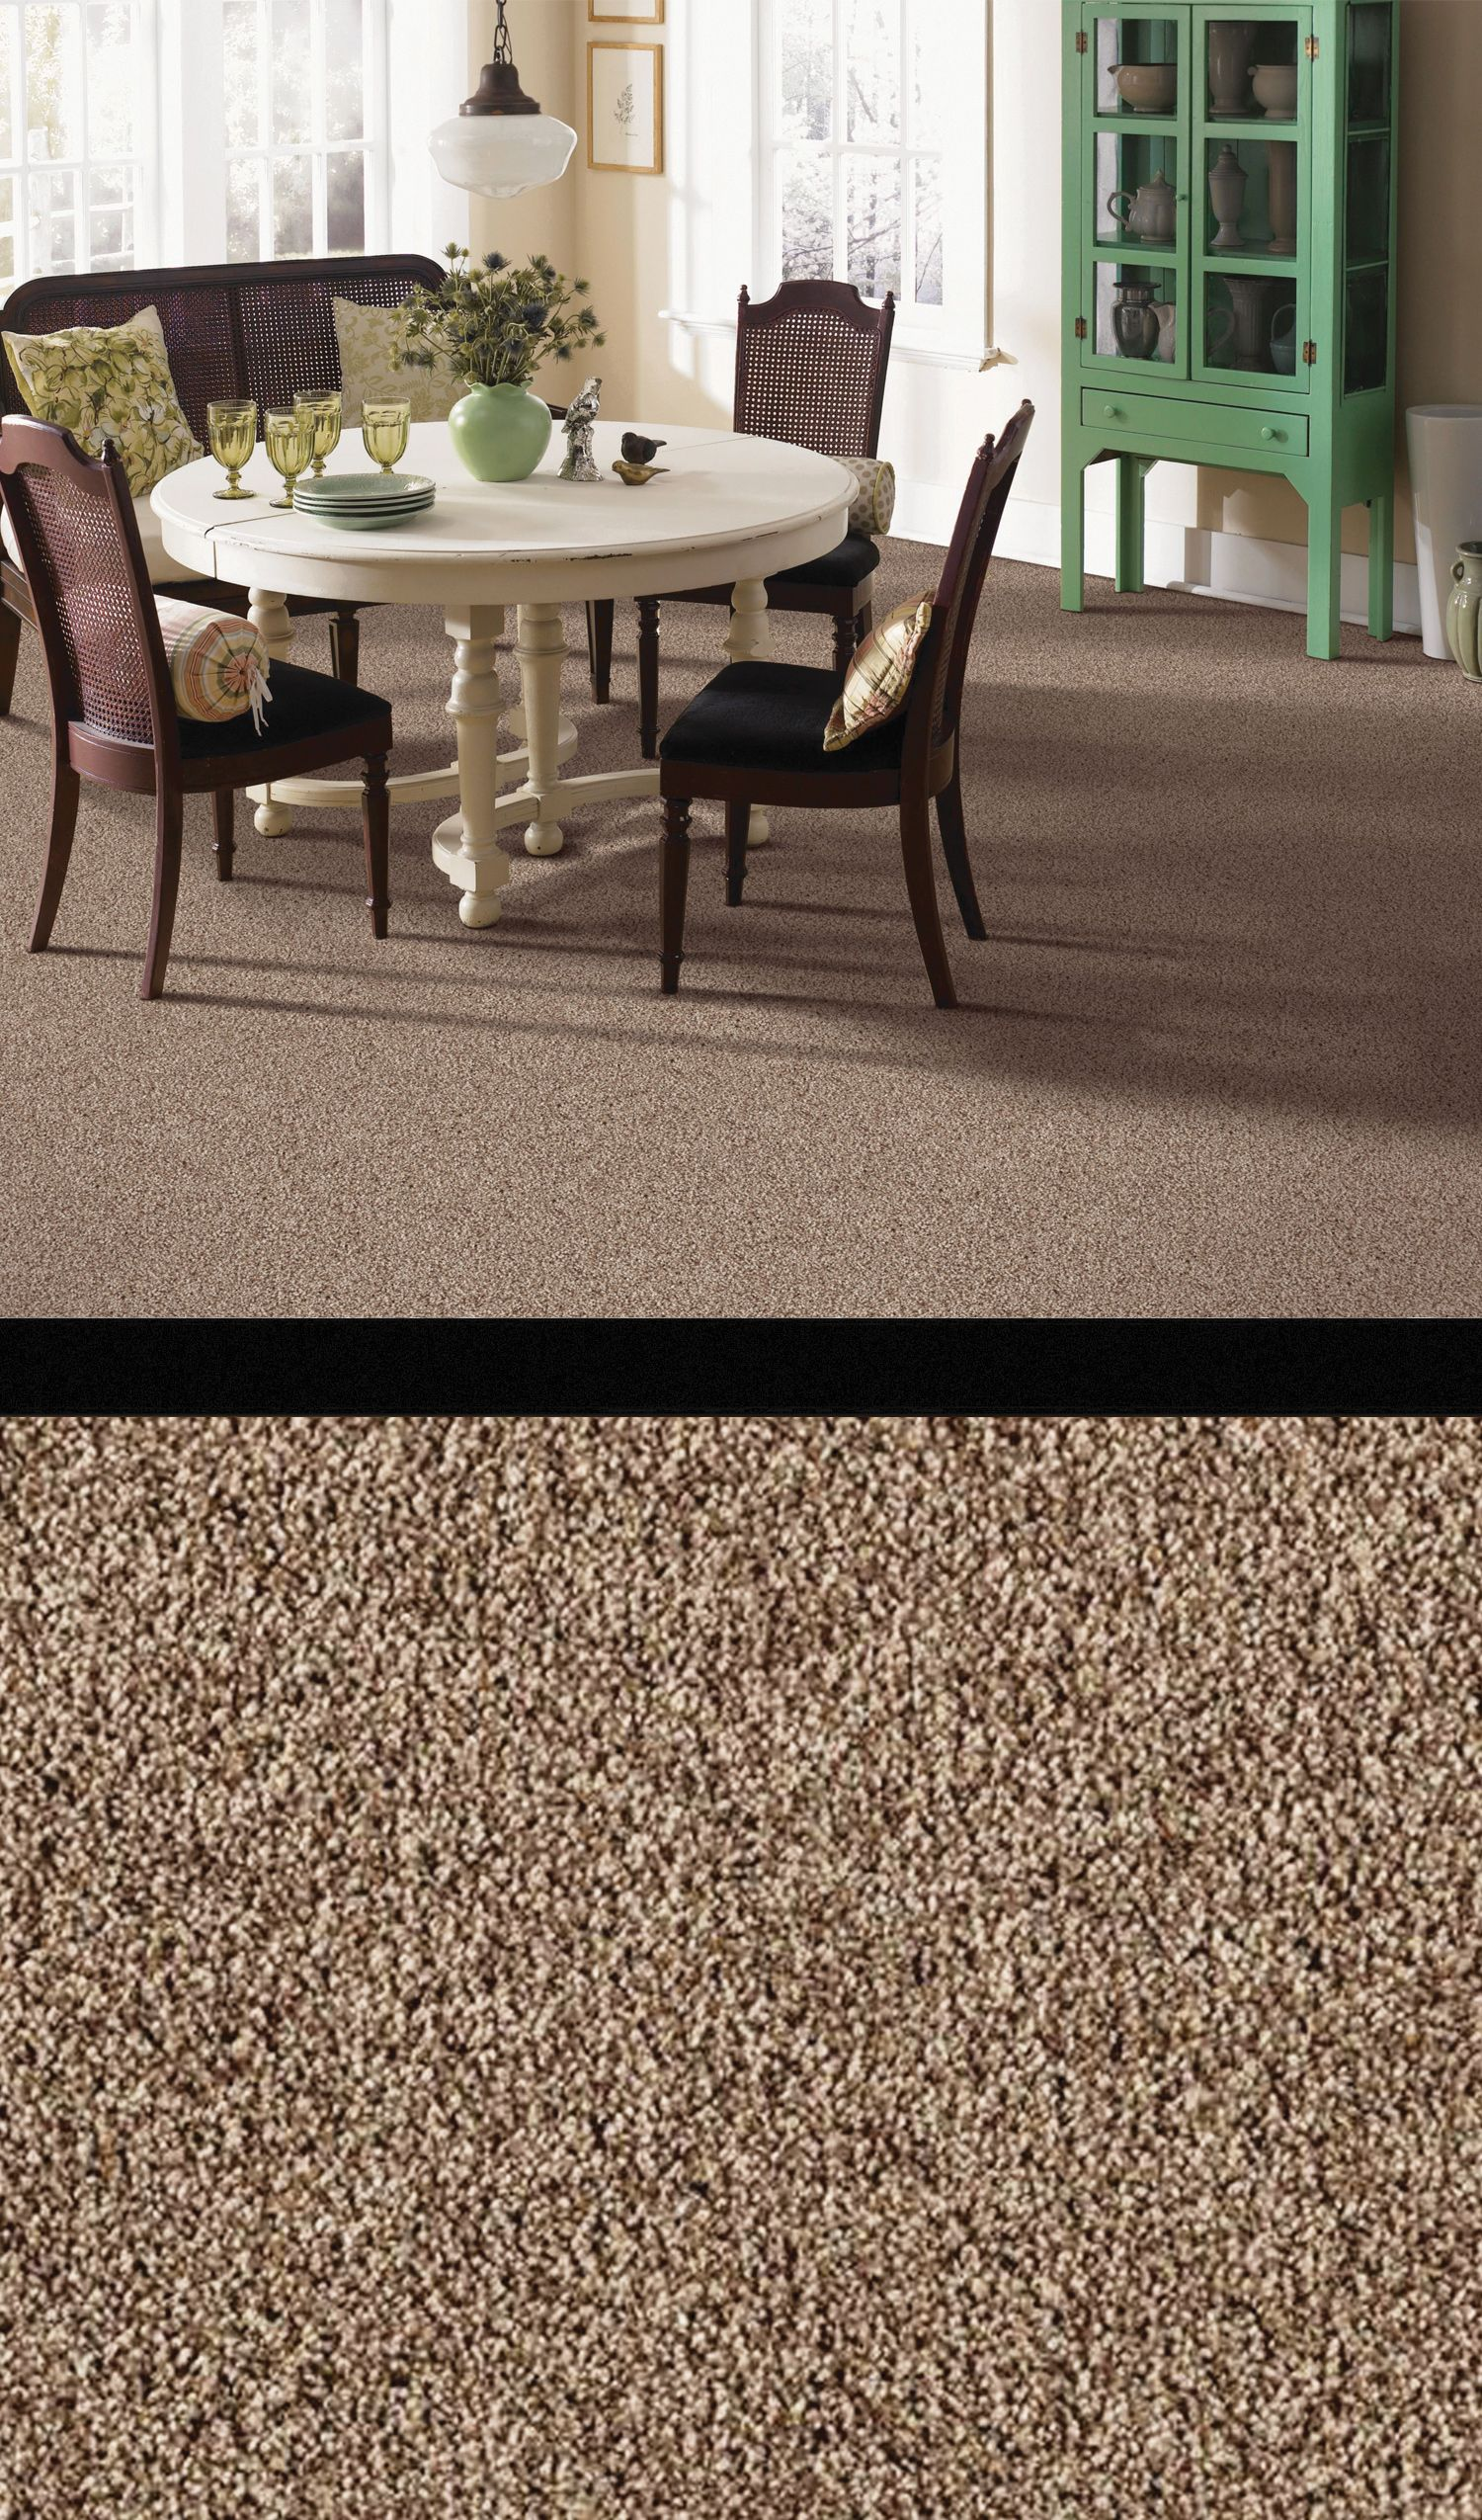 Kitchen Carpeting Transform Your Space With Mohawk Copper Village Carpeting Made